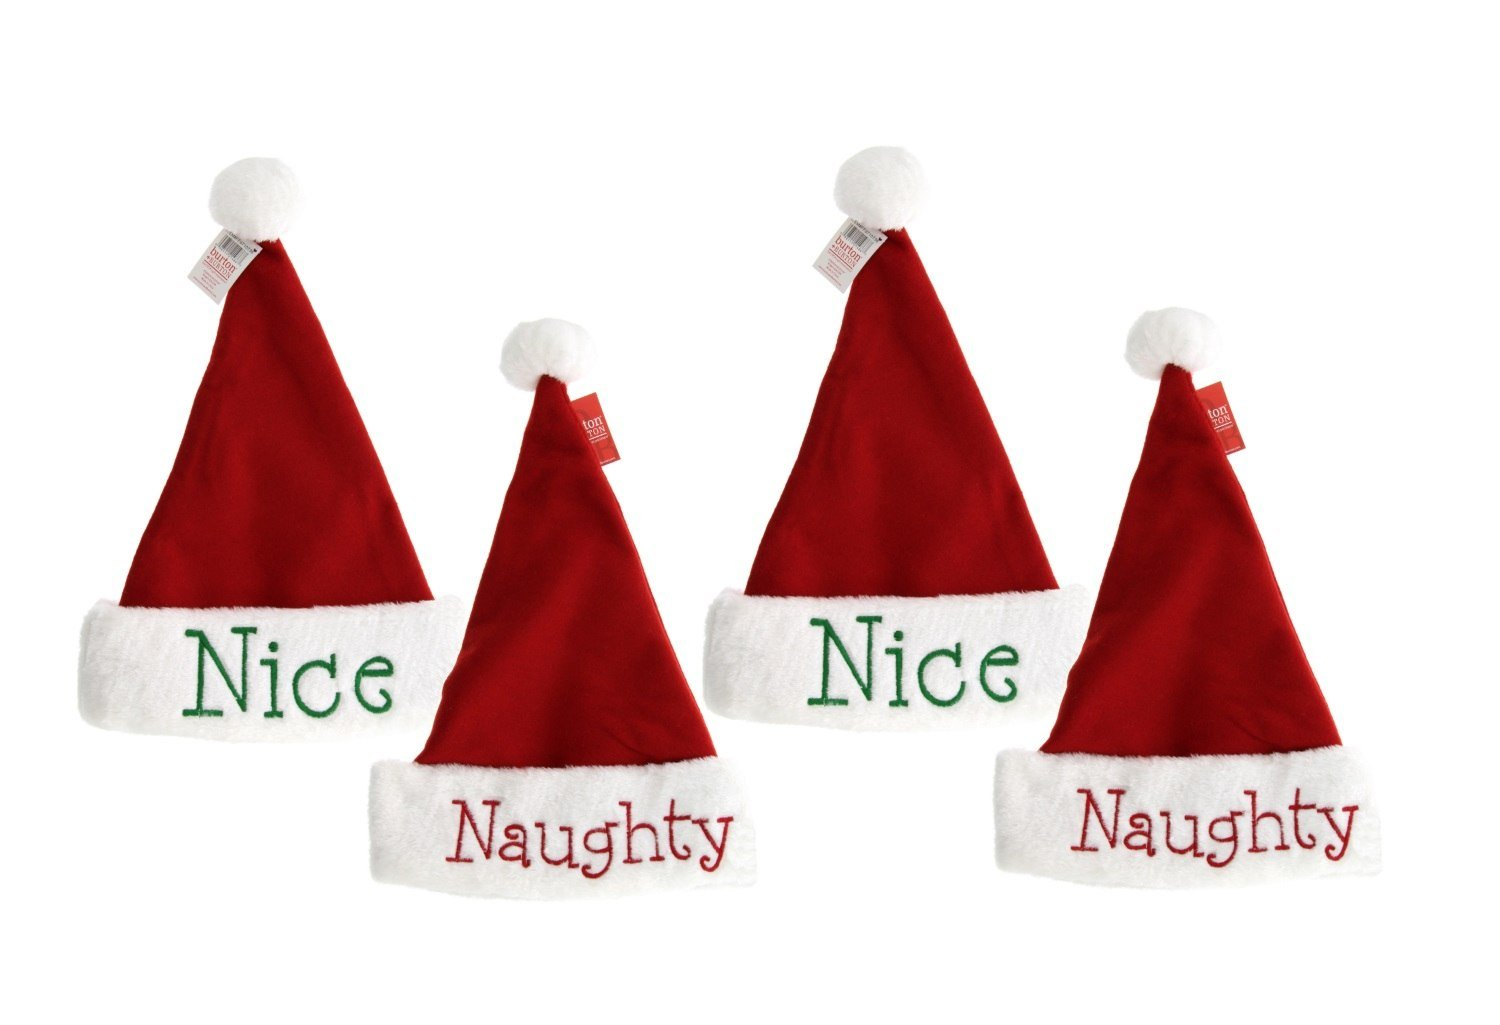 Burton & Burton Naughty or Nice Santa Hats, 4pk, Festive Holiday Christmas Hats with Hand Stitched Naughty in Red on one side and Nice in Green on the other, Reversible (4 Hats)